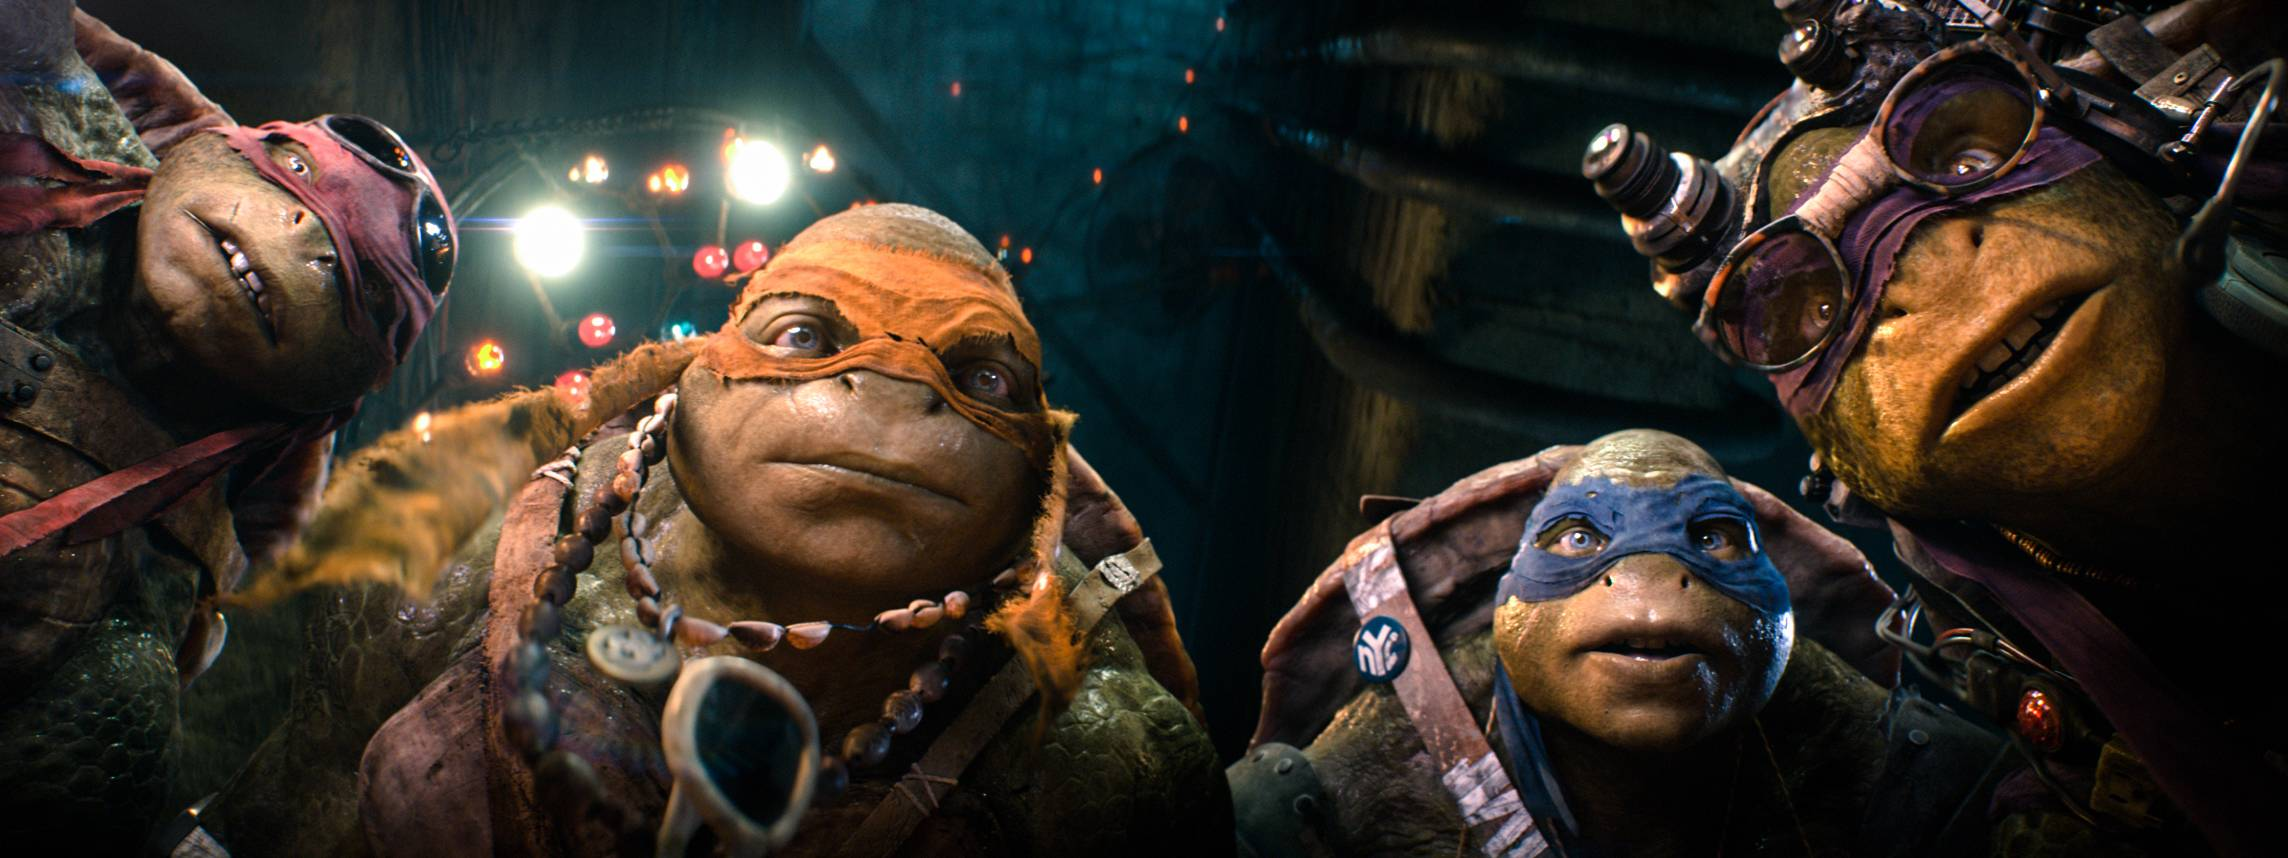 Cowabunga! 'Ninja Turtles' bring box-office power